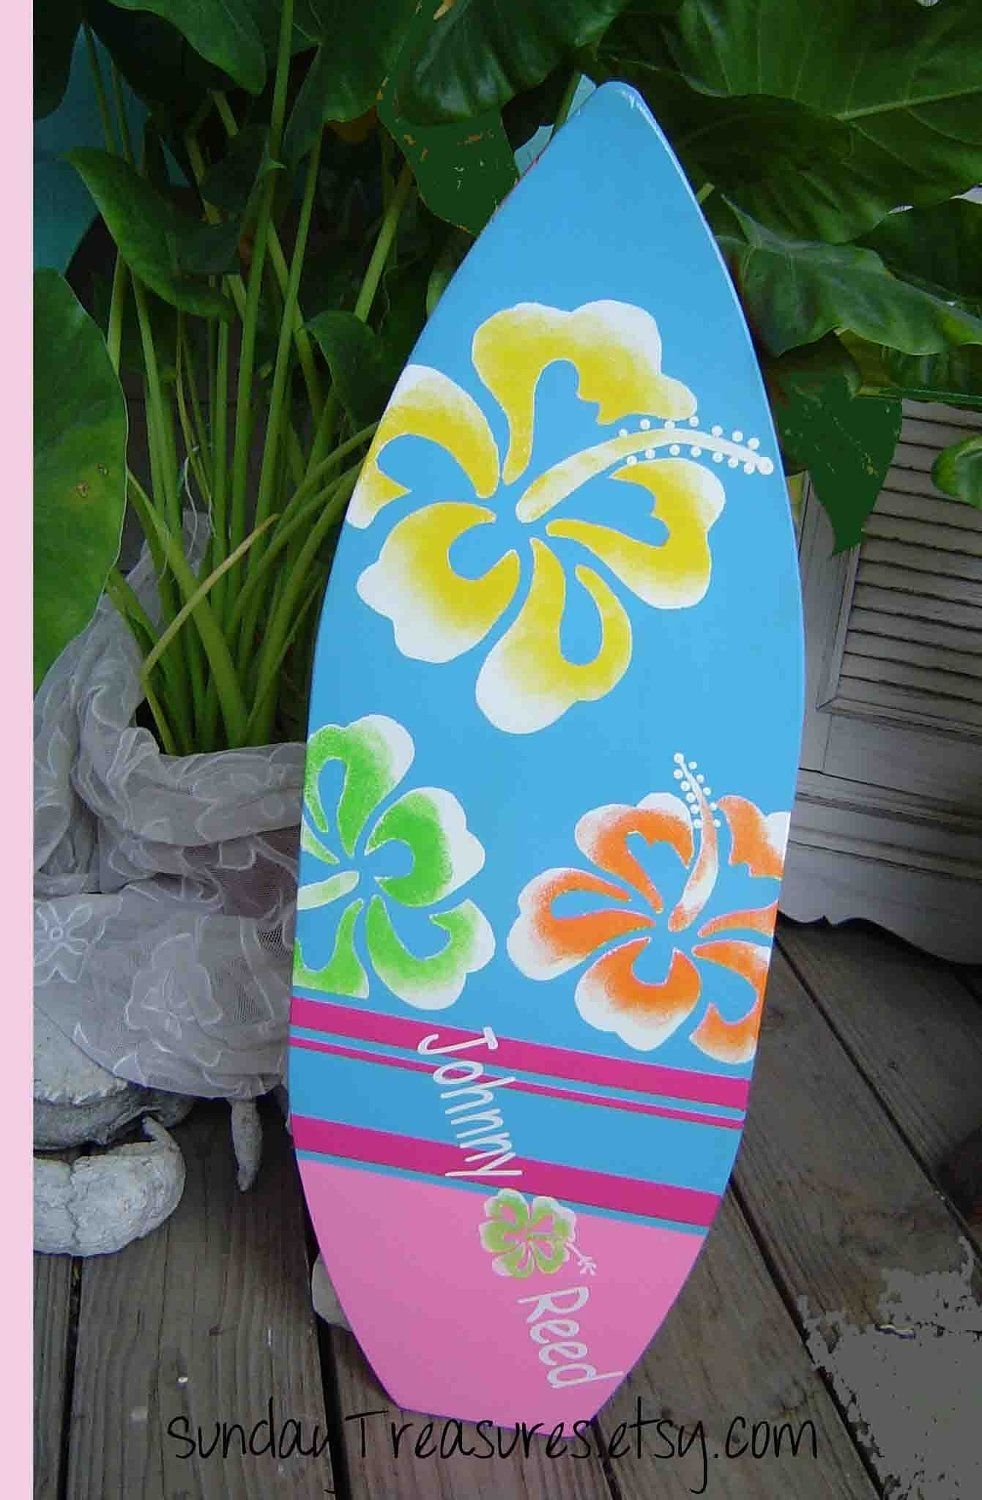 27 Inch Surfboard (View 2 of 20)